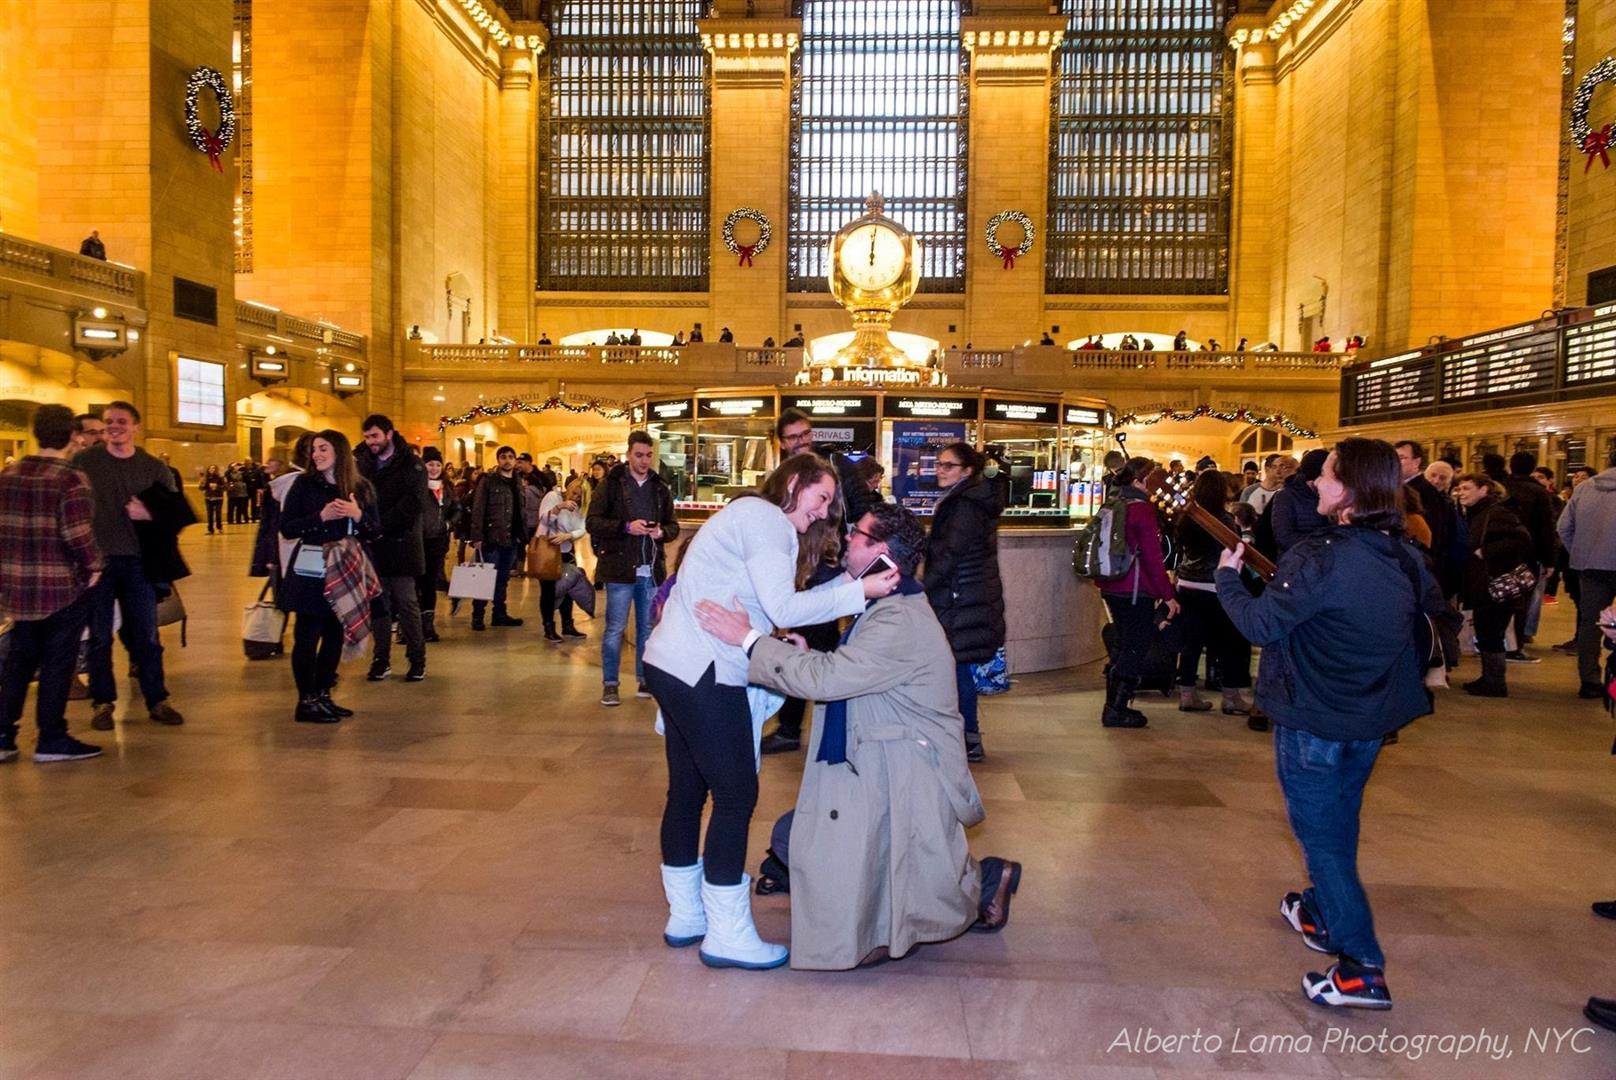 The Proposal at Grant Central Station in New York | MouseMingle.com